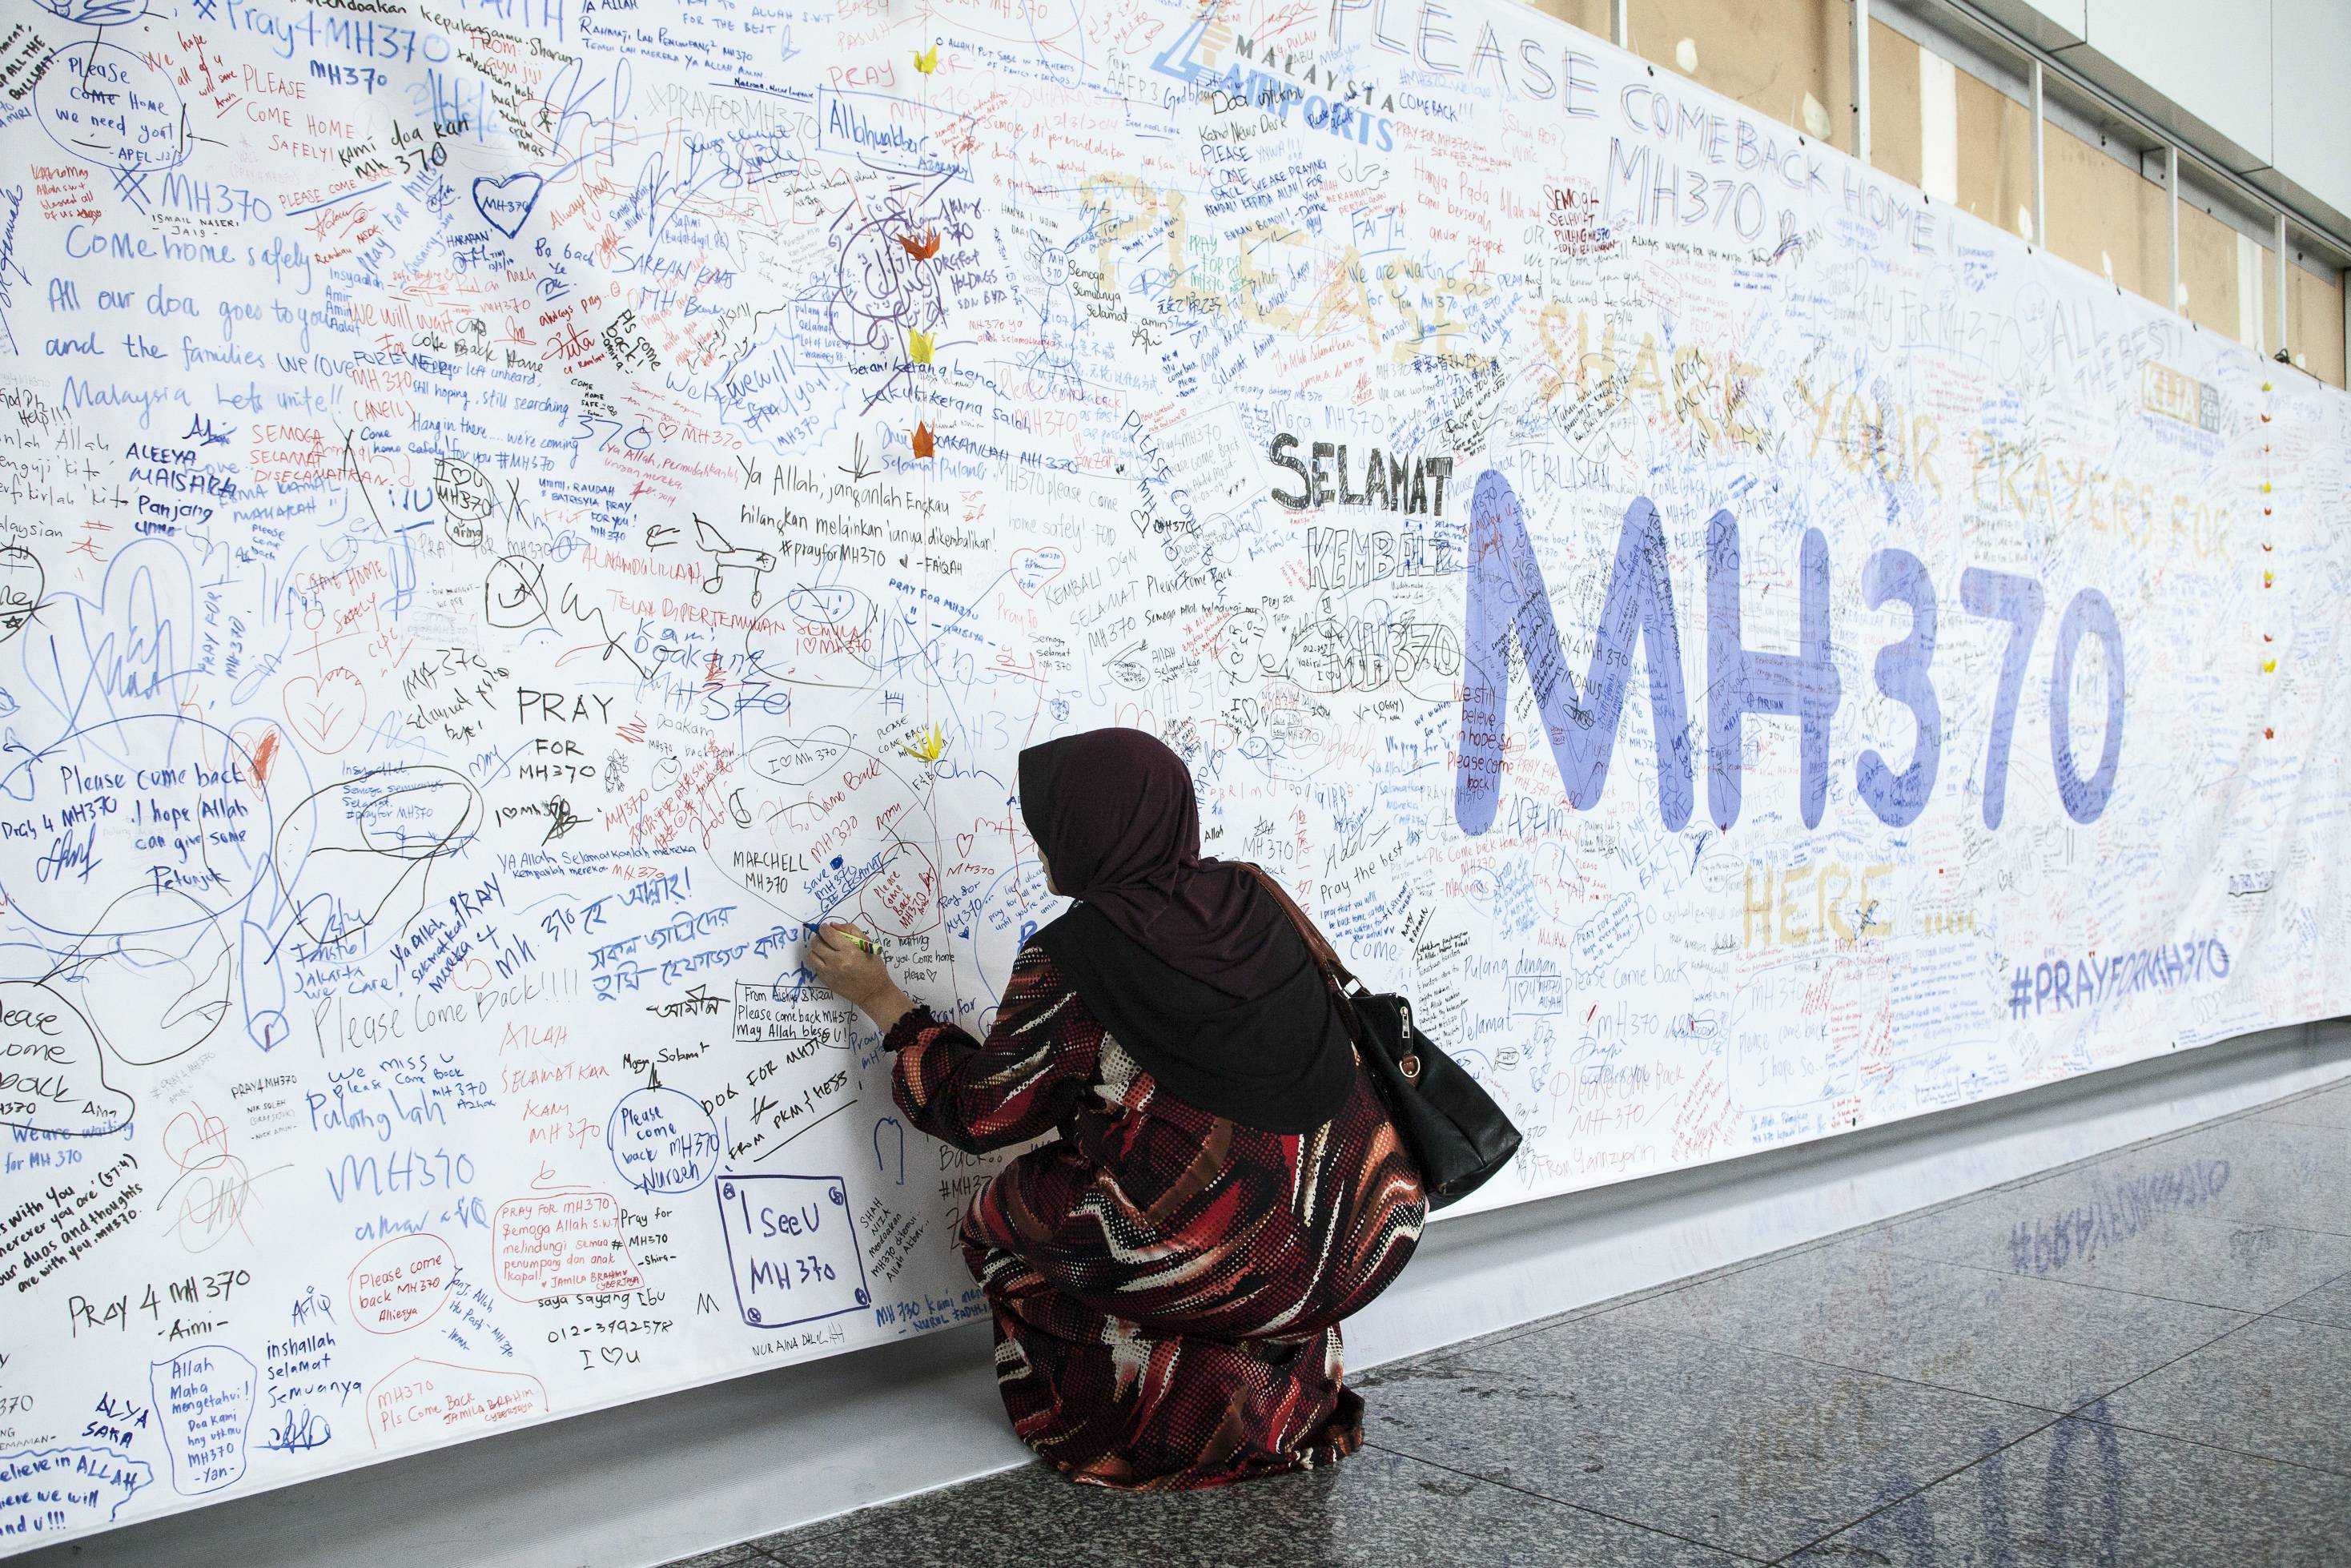 A woman writes a message on a banner for missing Malaysian Airline System Bhd. (MAS) Flight 370 at Kuala Lumpur International Airport (KLIA) in Sepang, Malaysia, on Friday, March 14, 2014.